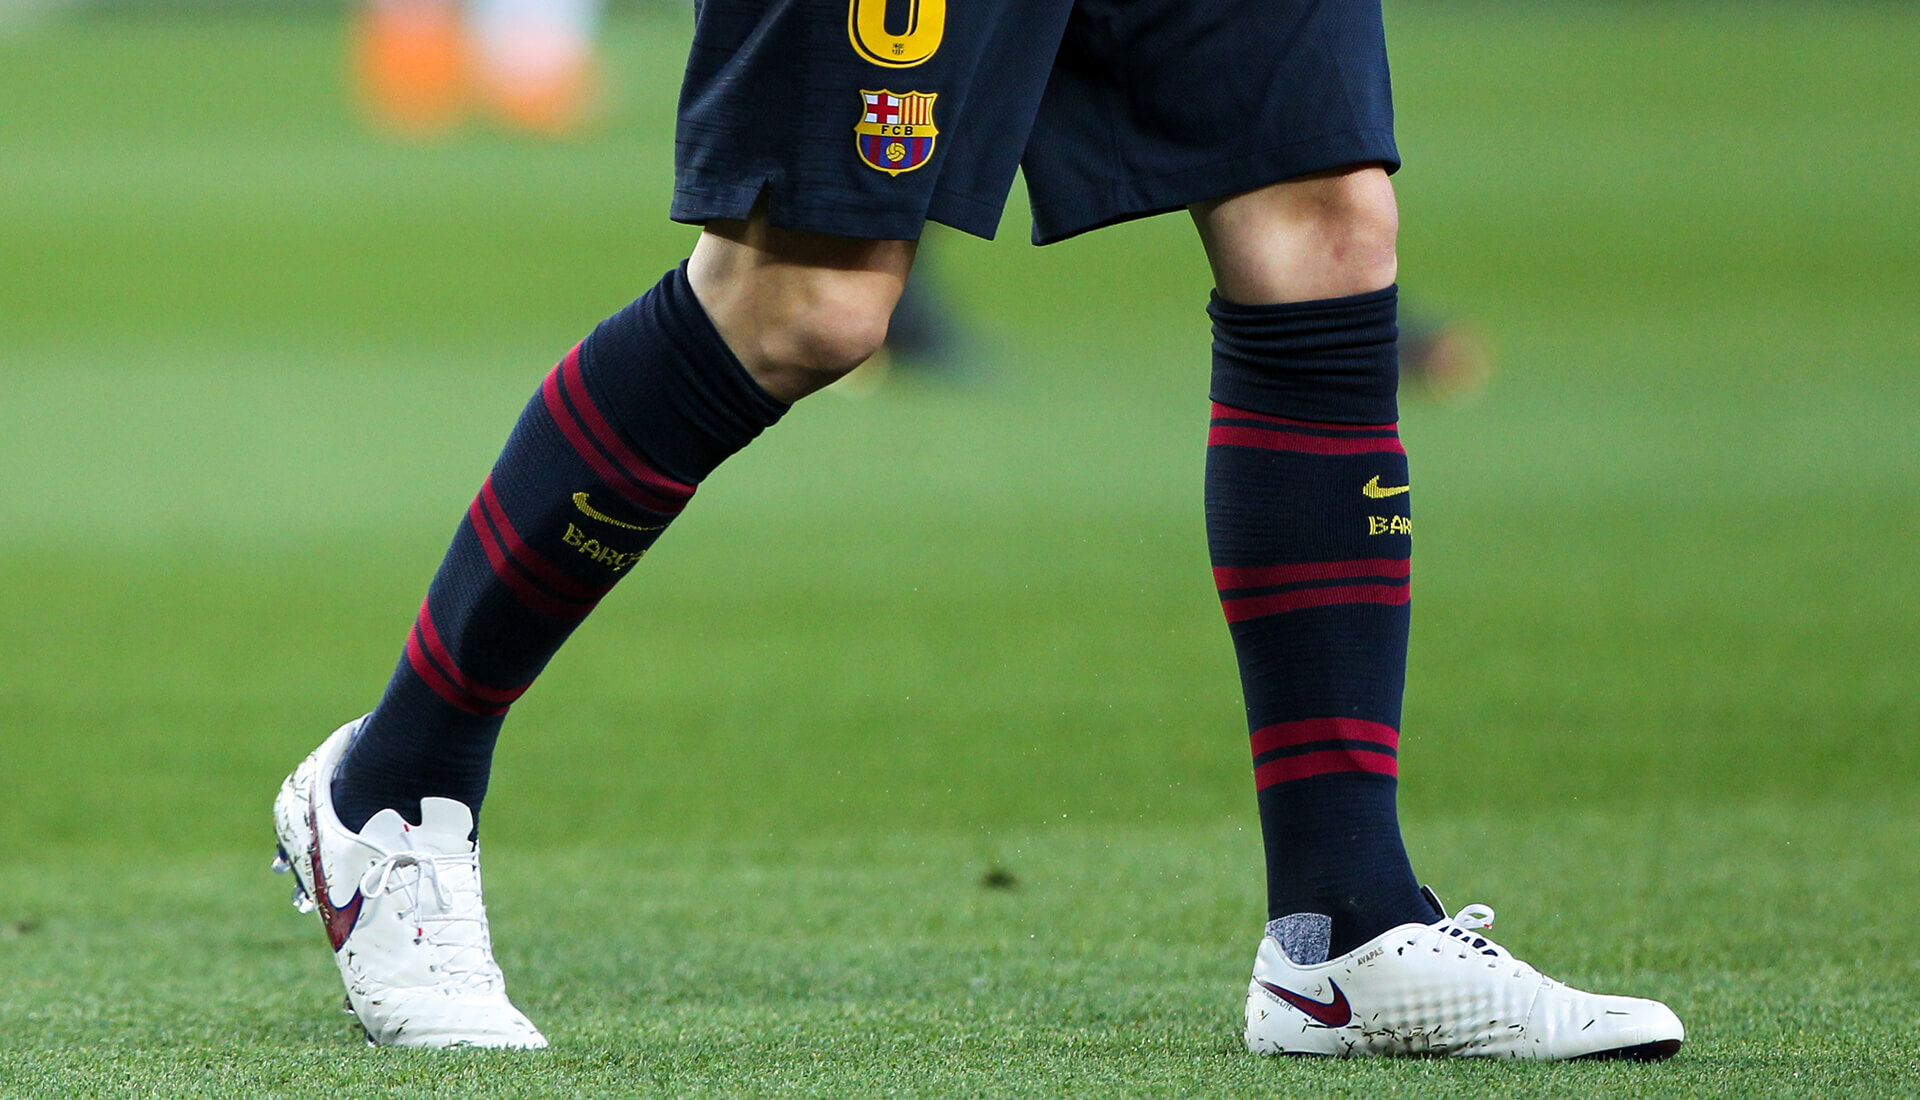 Iniesta Receives Special Edition Nike